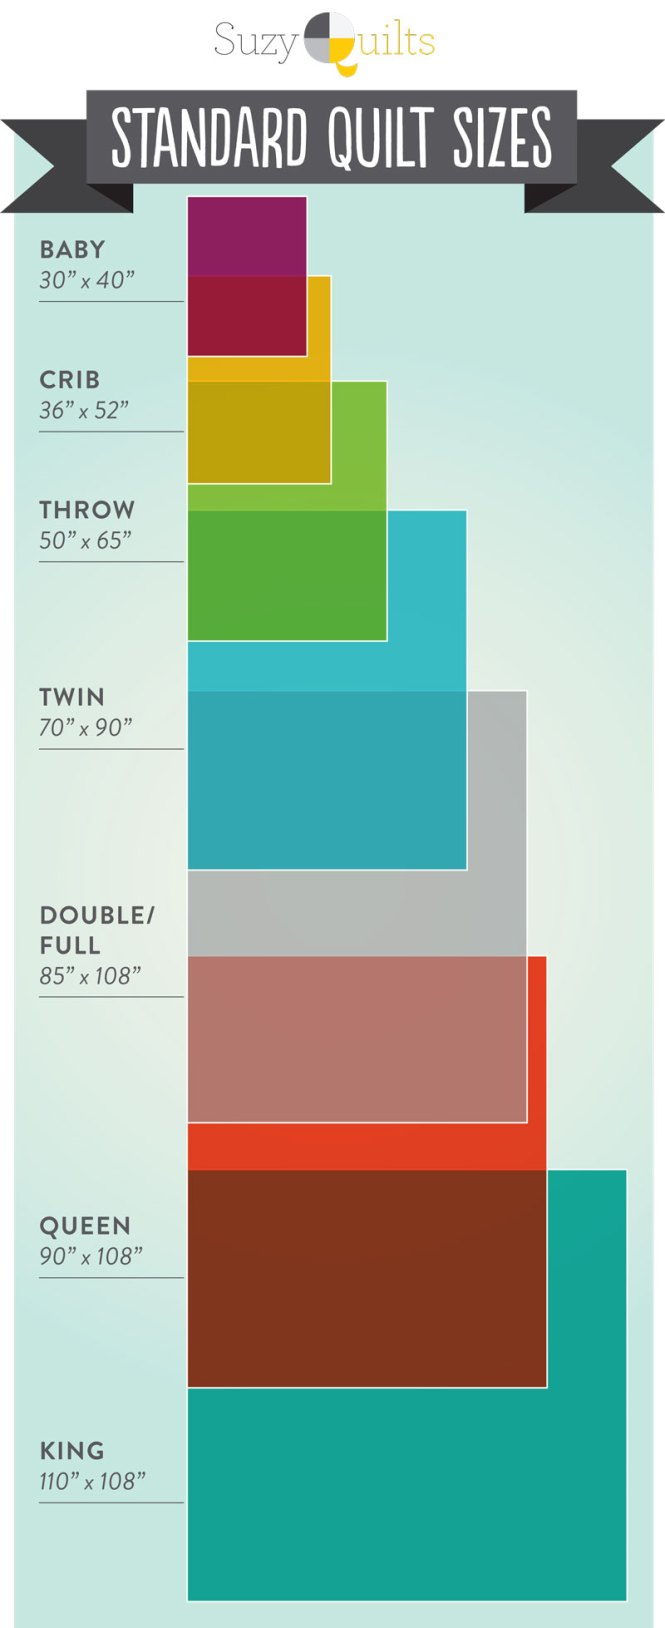 Quilt Sizes Infographic